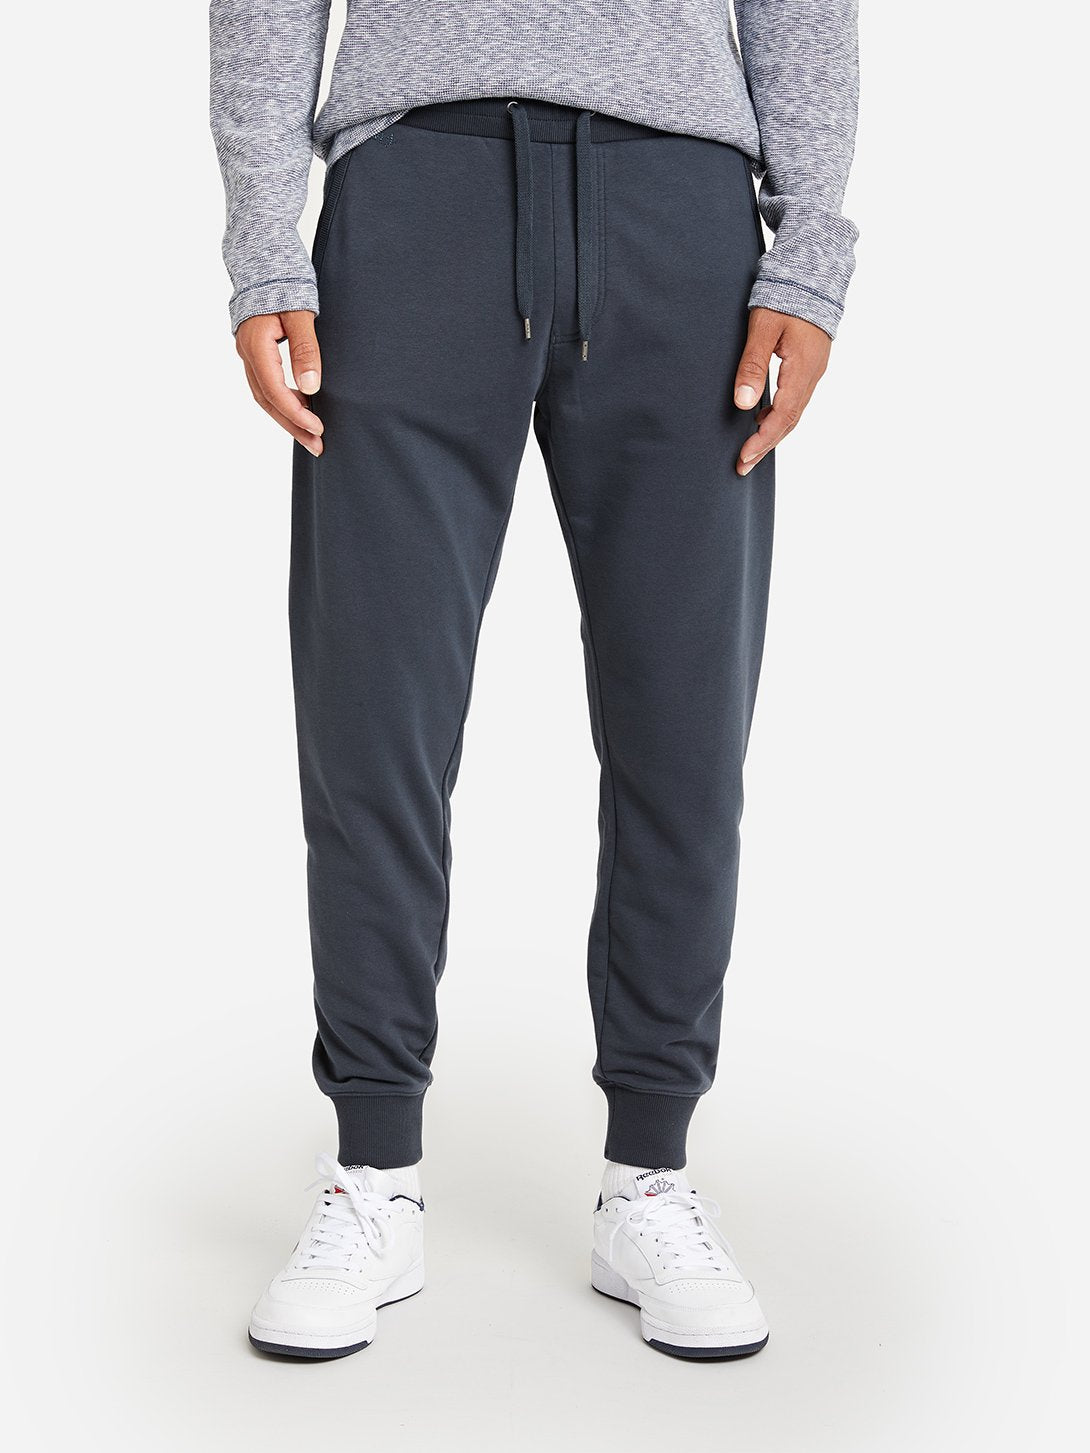 CHARCOAL GREY sweatpants for men ons clothing bklyn jogger